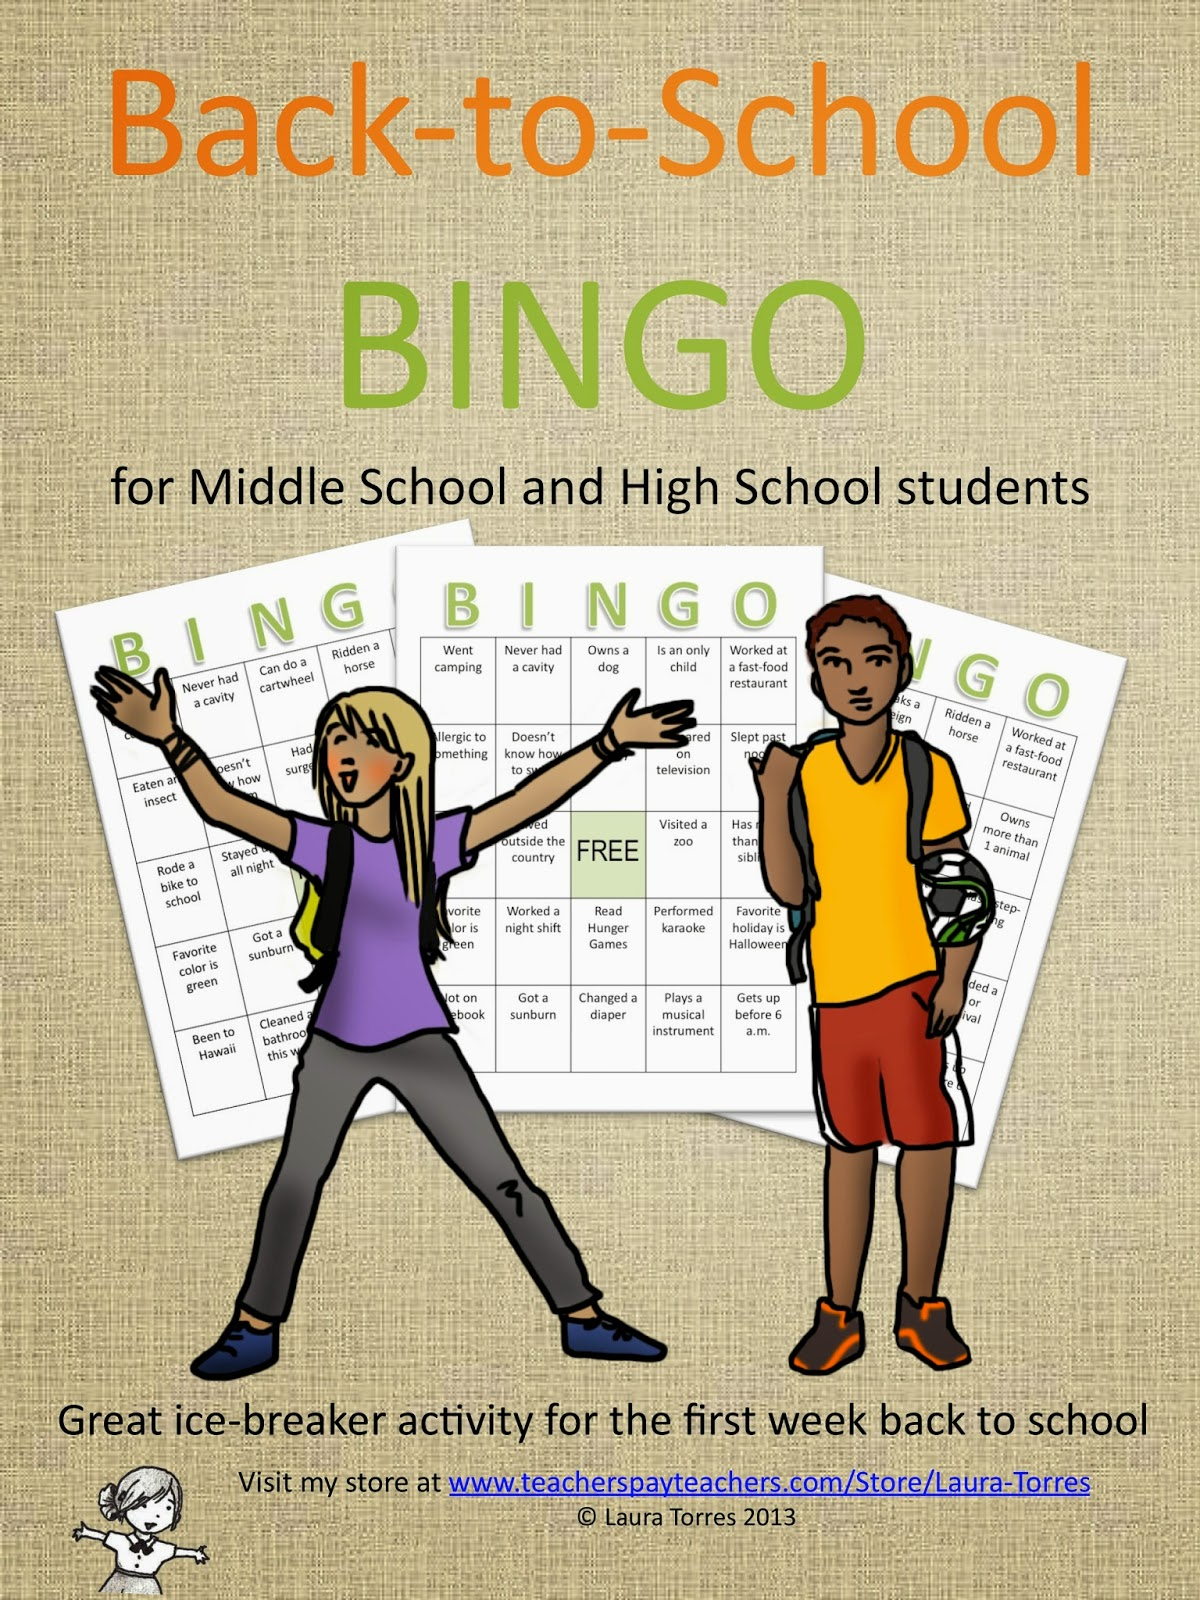 http://www.teacherspayteachers.com/Product/Back-to-School-Bingo-780909